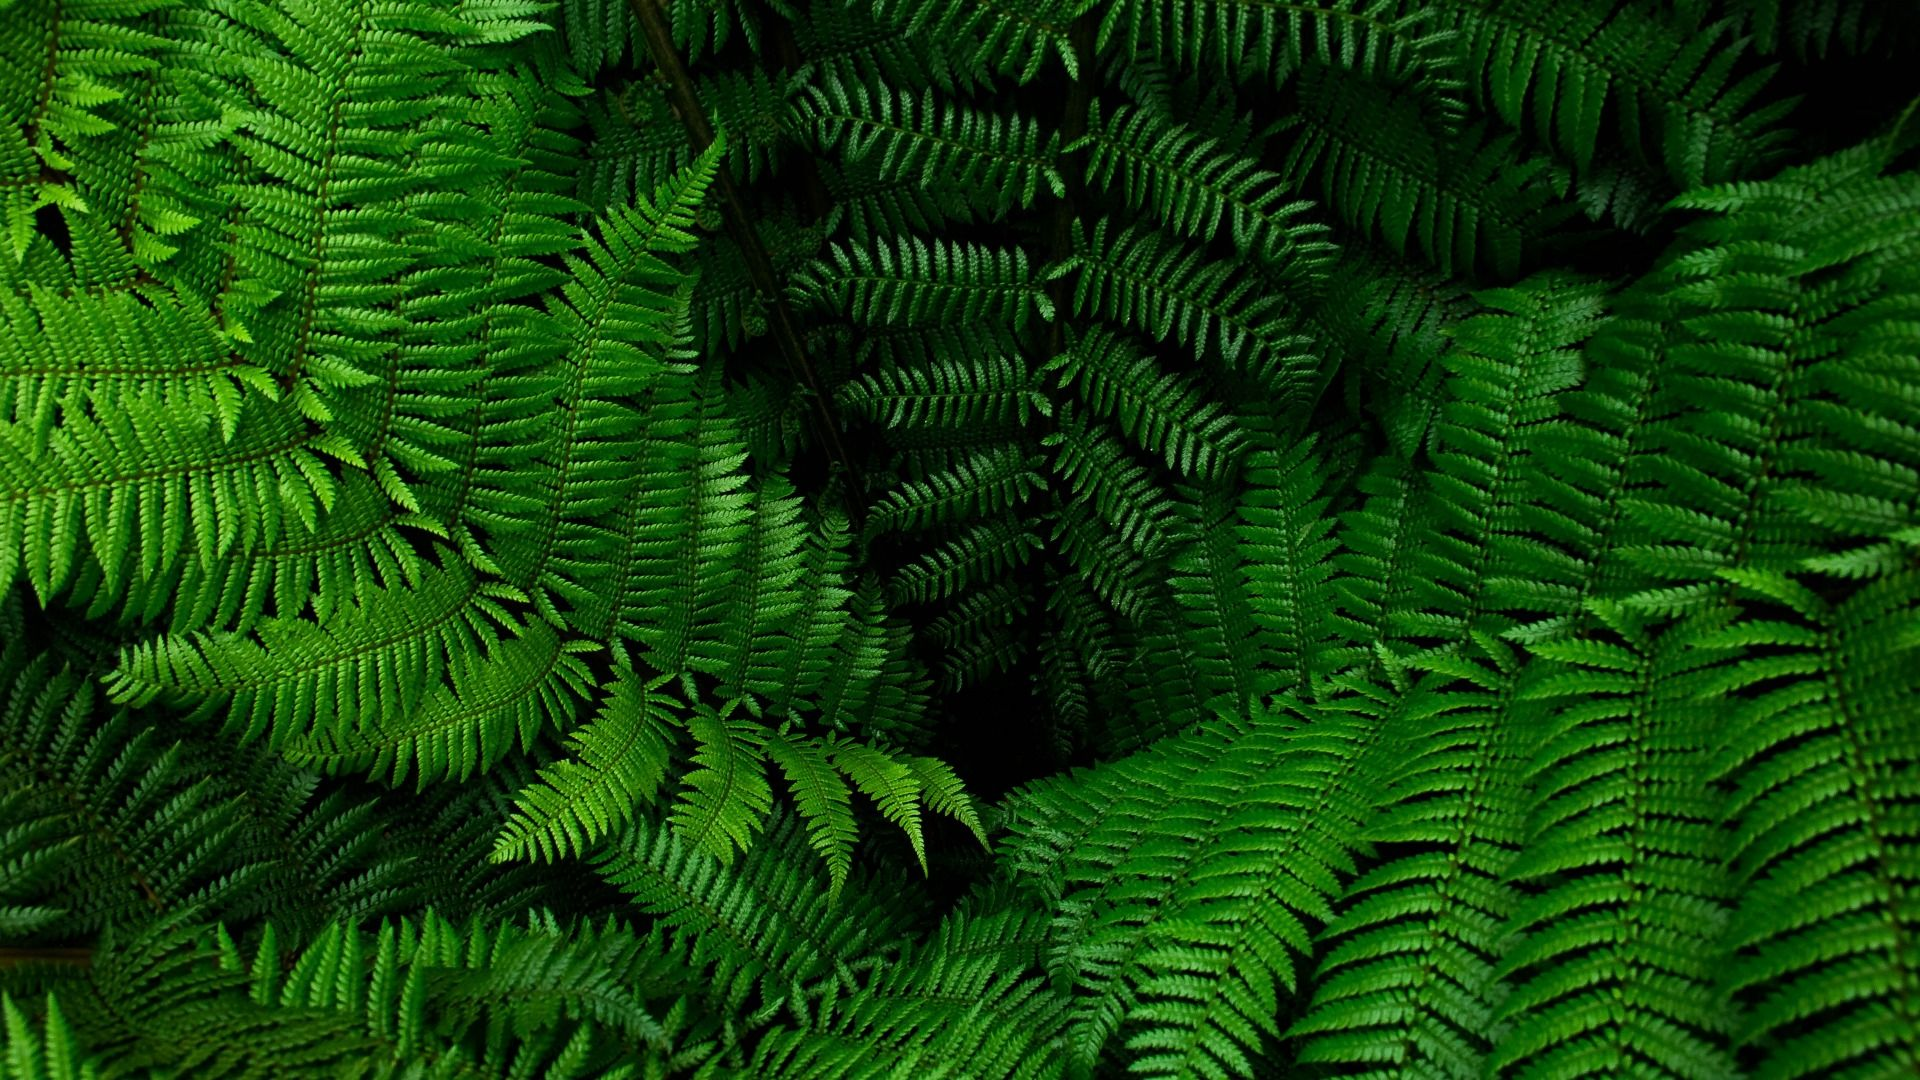 Fern hd wallpaper 1080p for pc